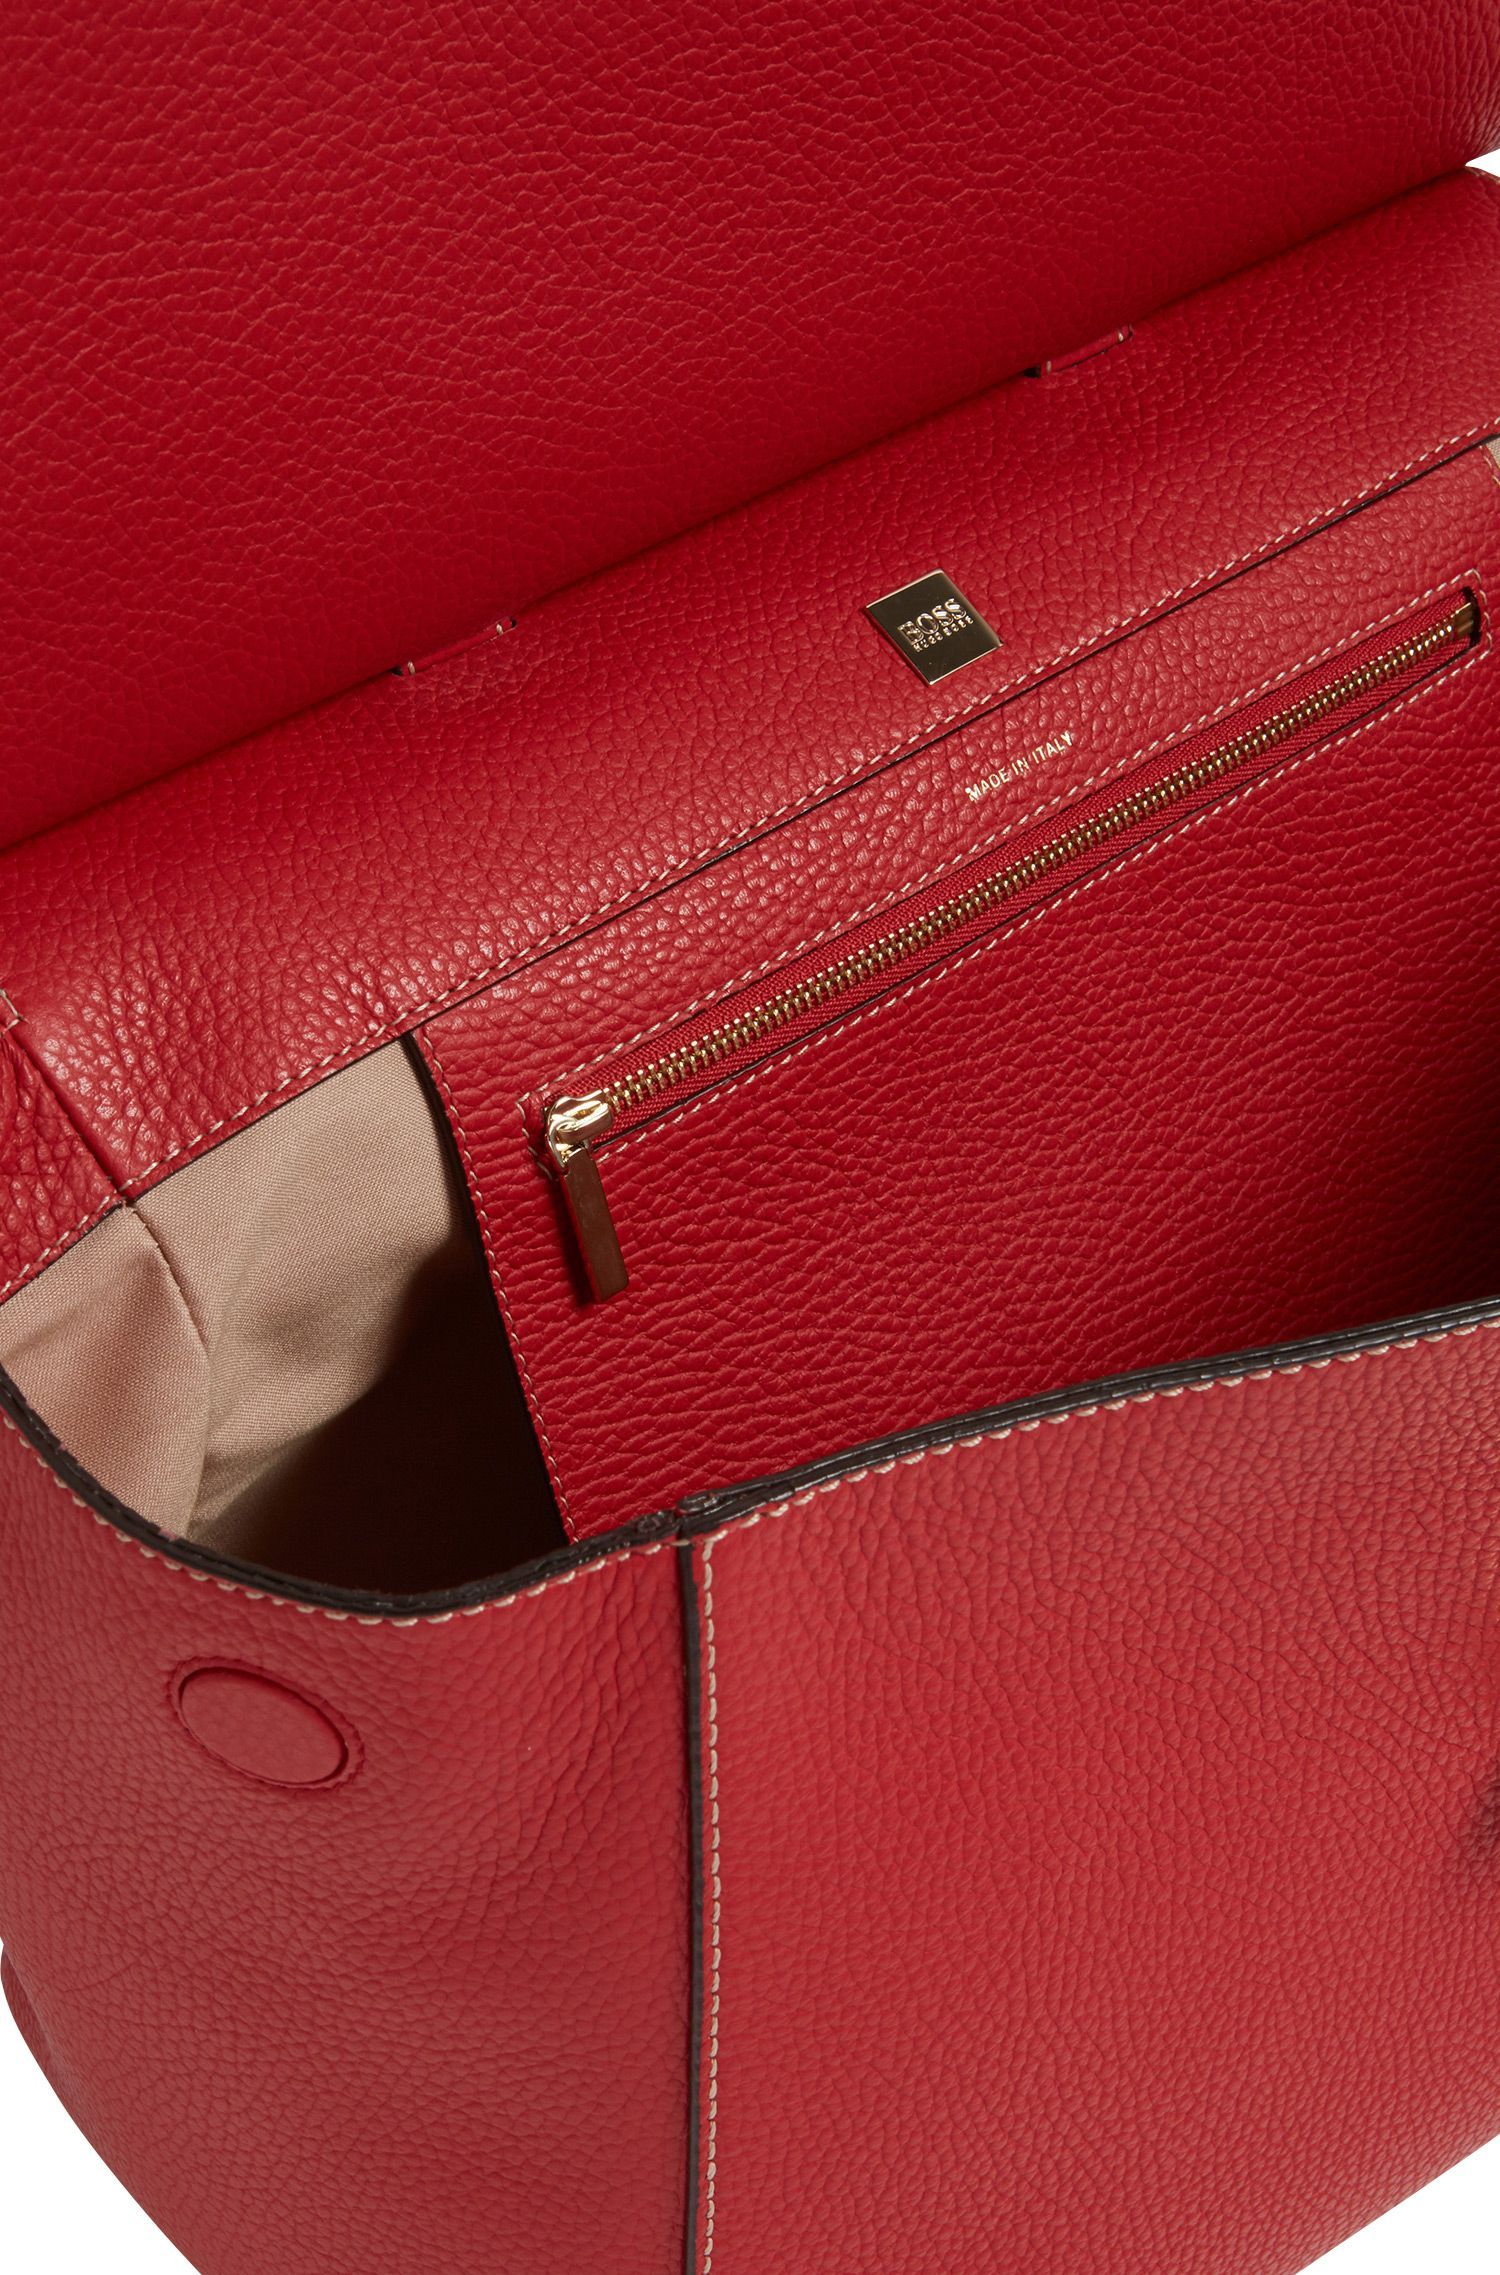 'BOSS Bespoke Soft M' | Leather Grained Satchel Handbag, Red